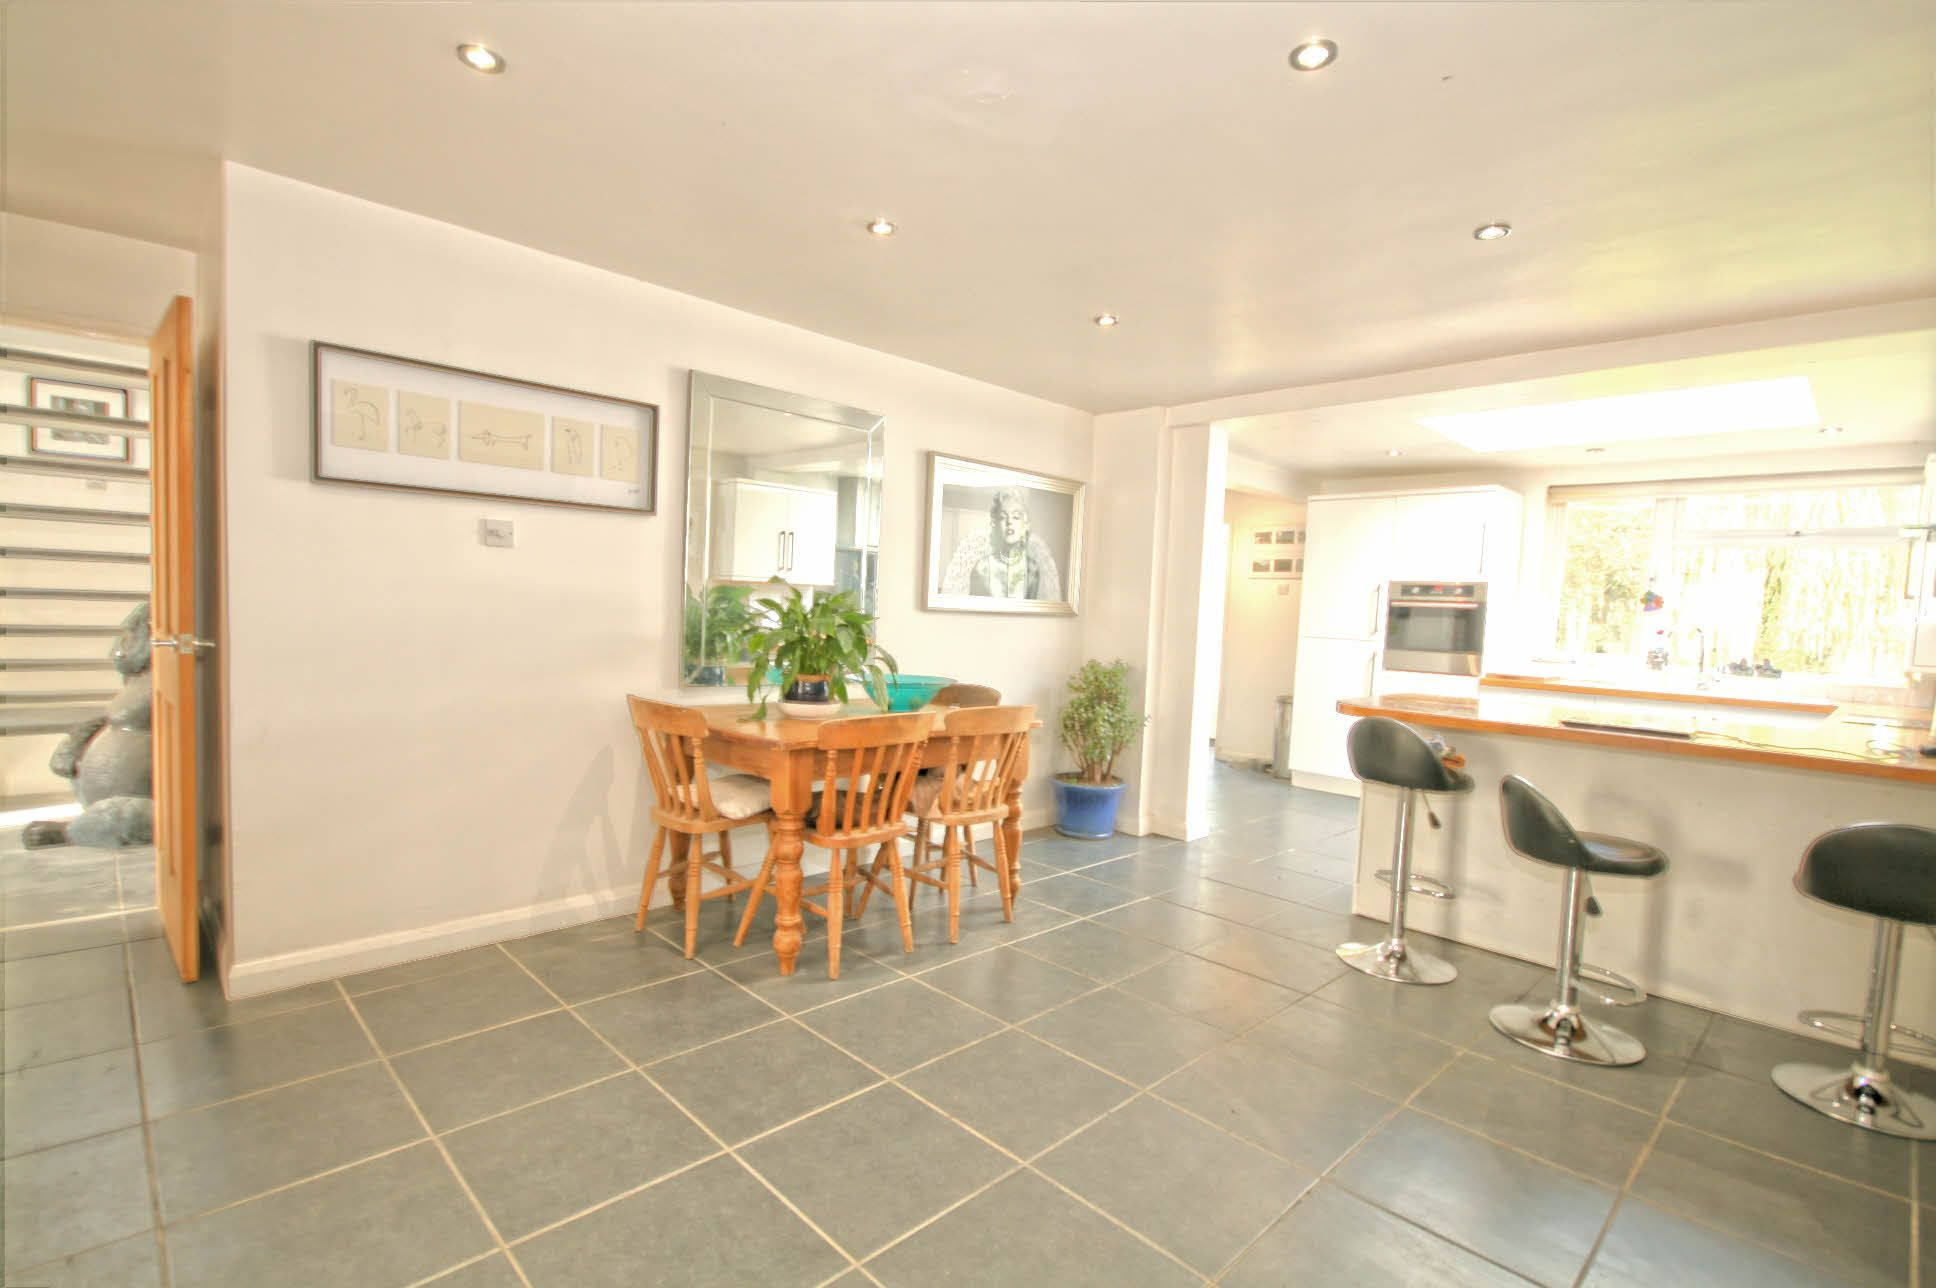 4 Bedroom Detached House For Sale - Photograph 4